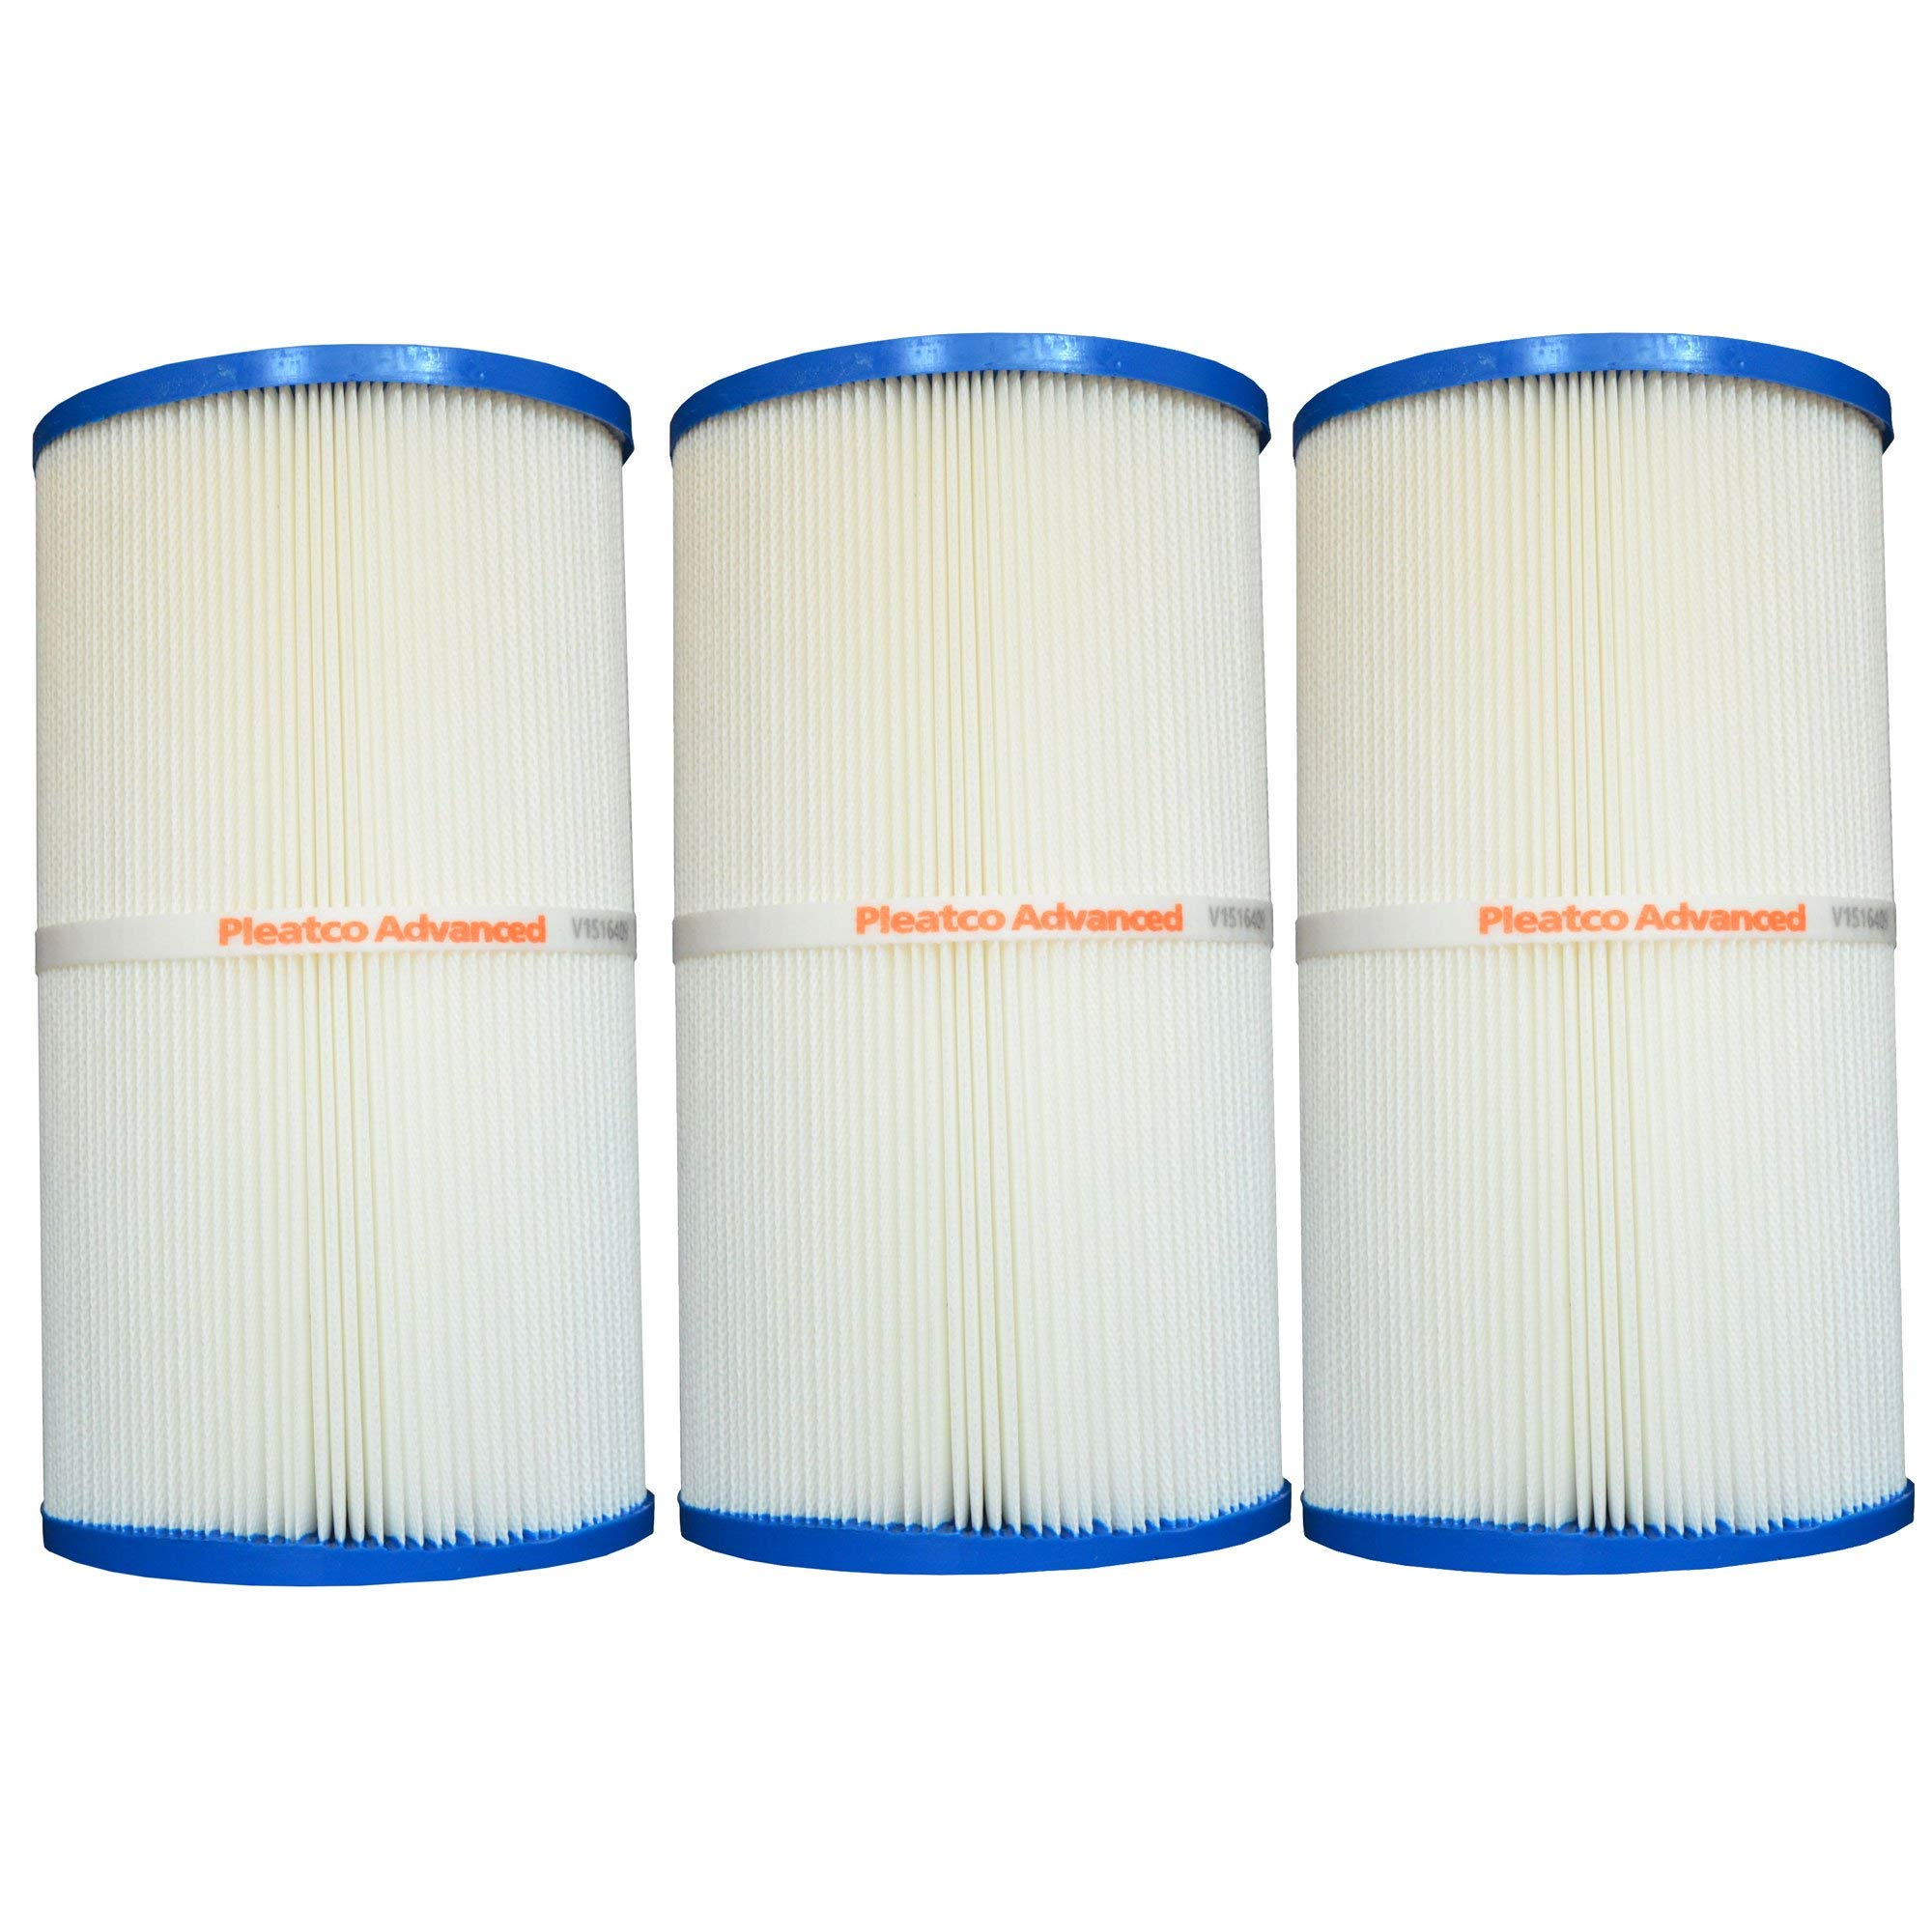 Pleatco PWK30 Pool Spa Replacement Filter Cartridge (3 Pack) by Pleatco